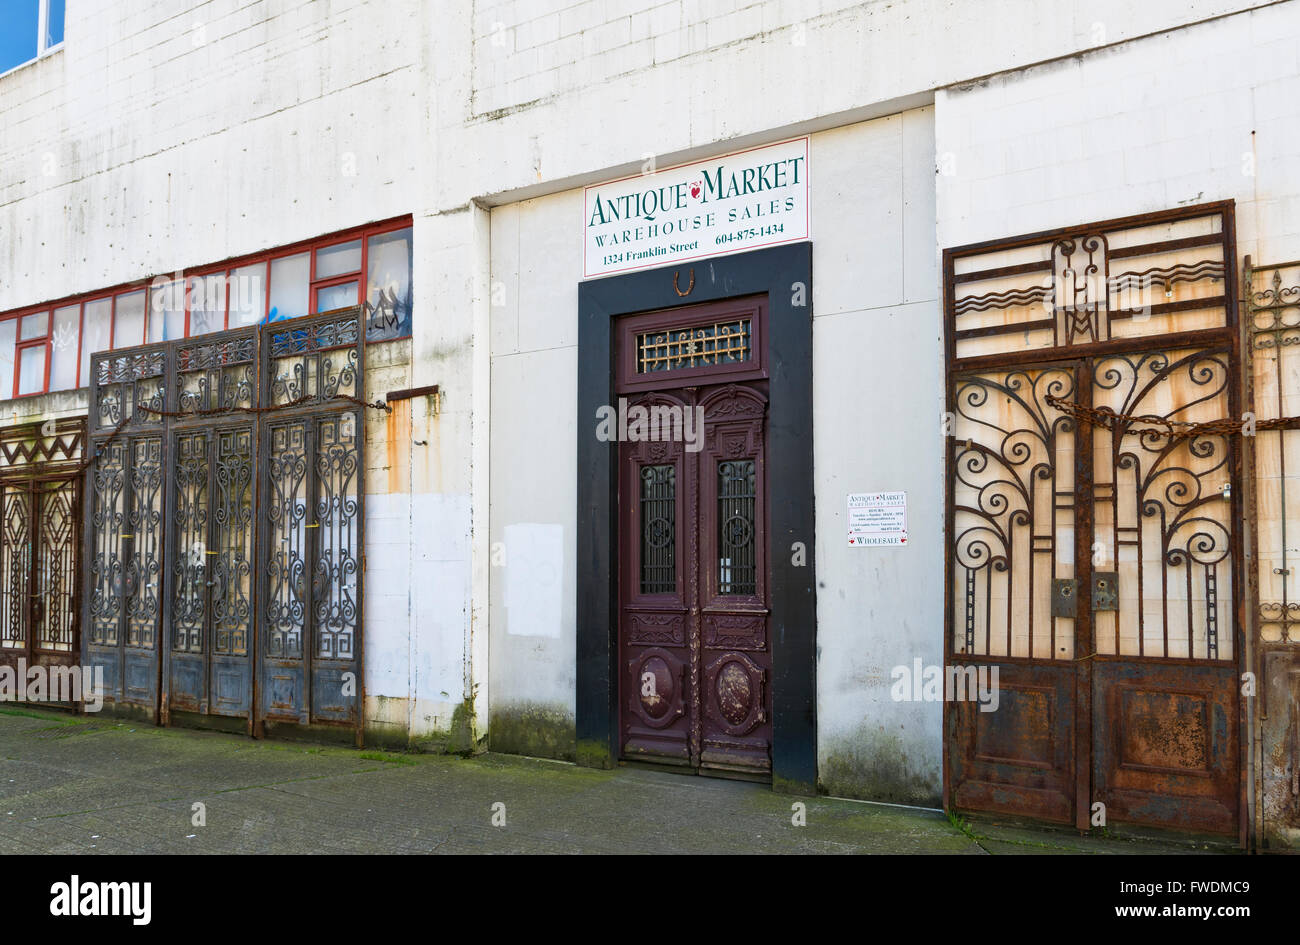 Entrance to Antique Market on Franklin Street in East Vancouver. Ornate  metal iron doors grates. Building exterior - Entrance To Antique Market On Franklin Street In East Vancouver